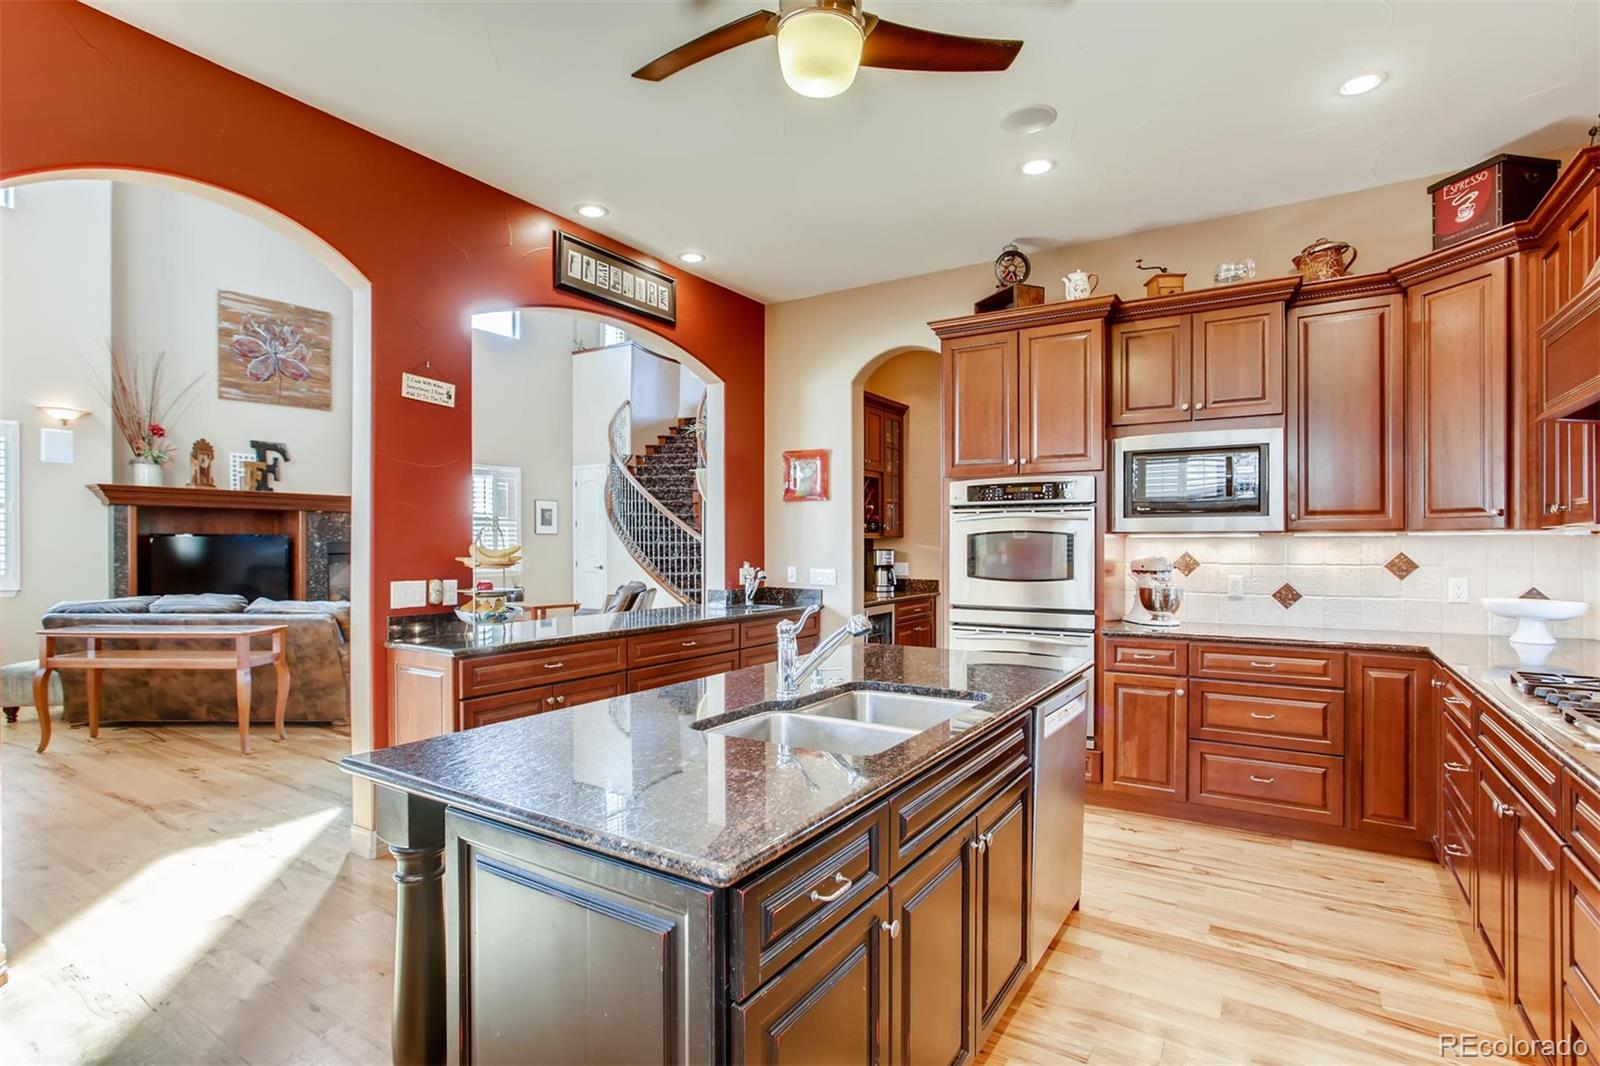 MLS# 8433922 - 4 - 3290 S Corona Street, Englewood, CO 80113